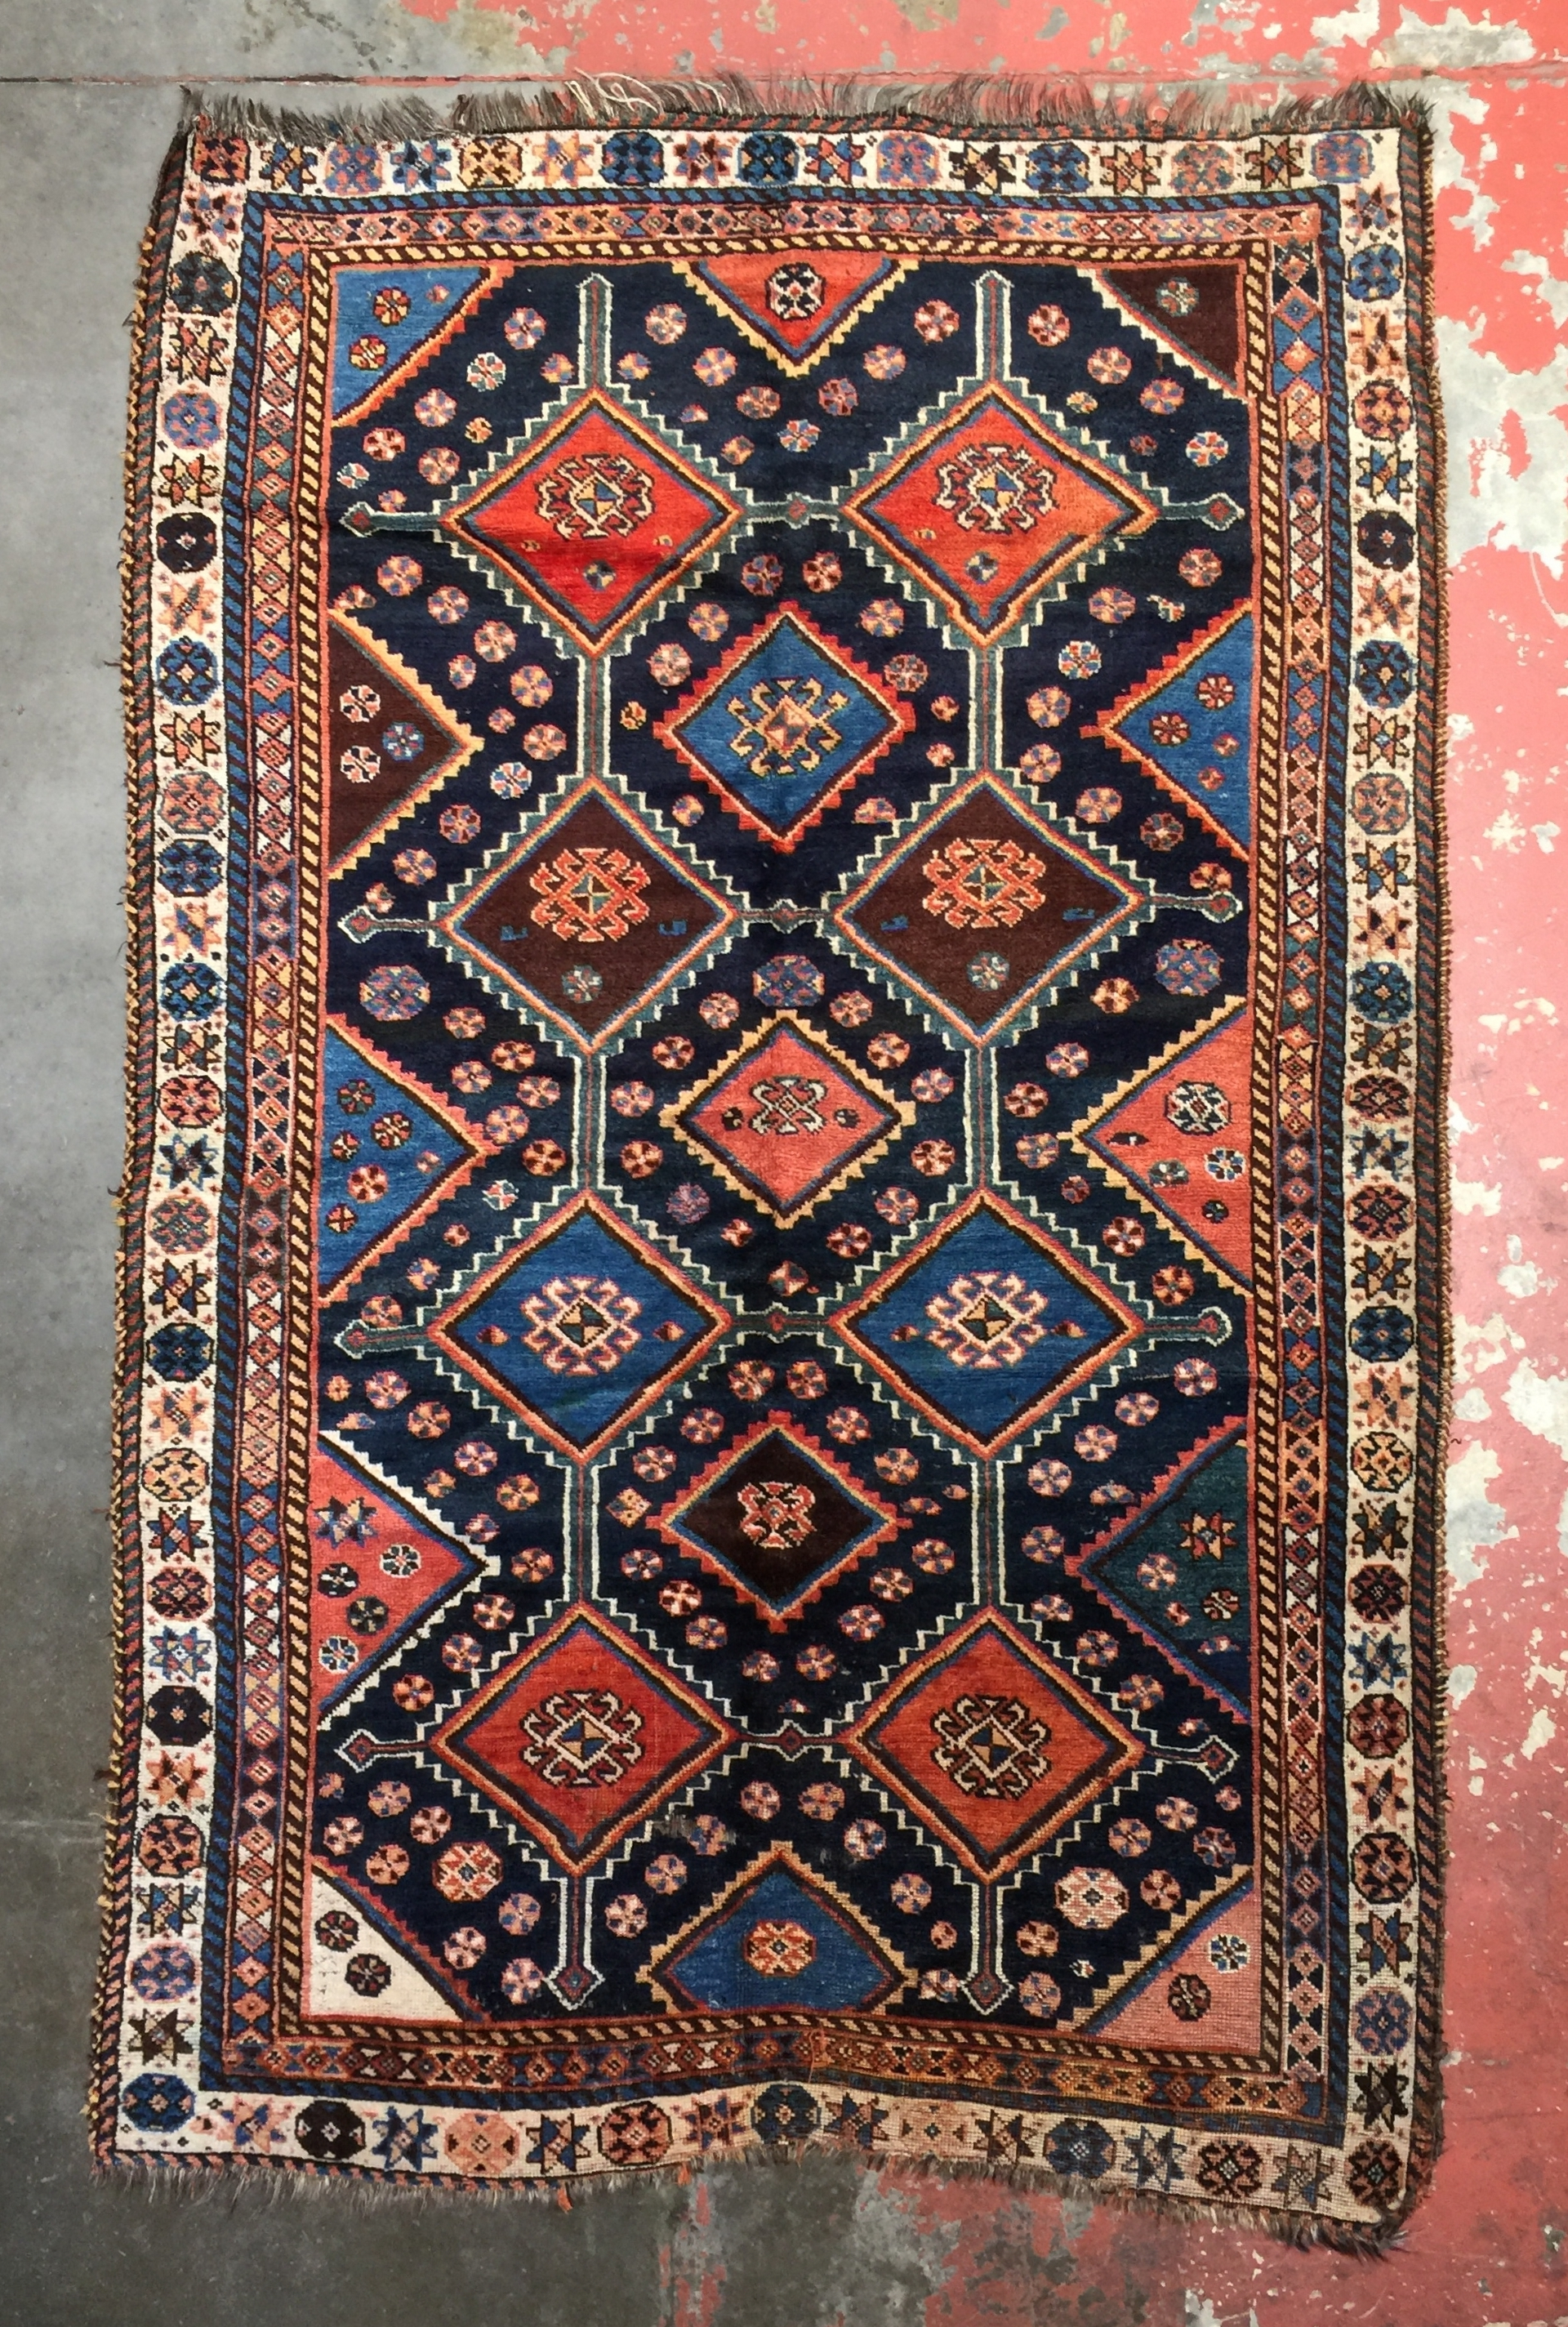 An overview of tribal rug